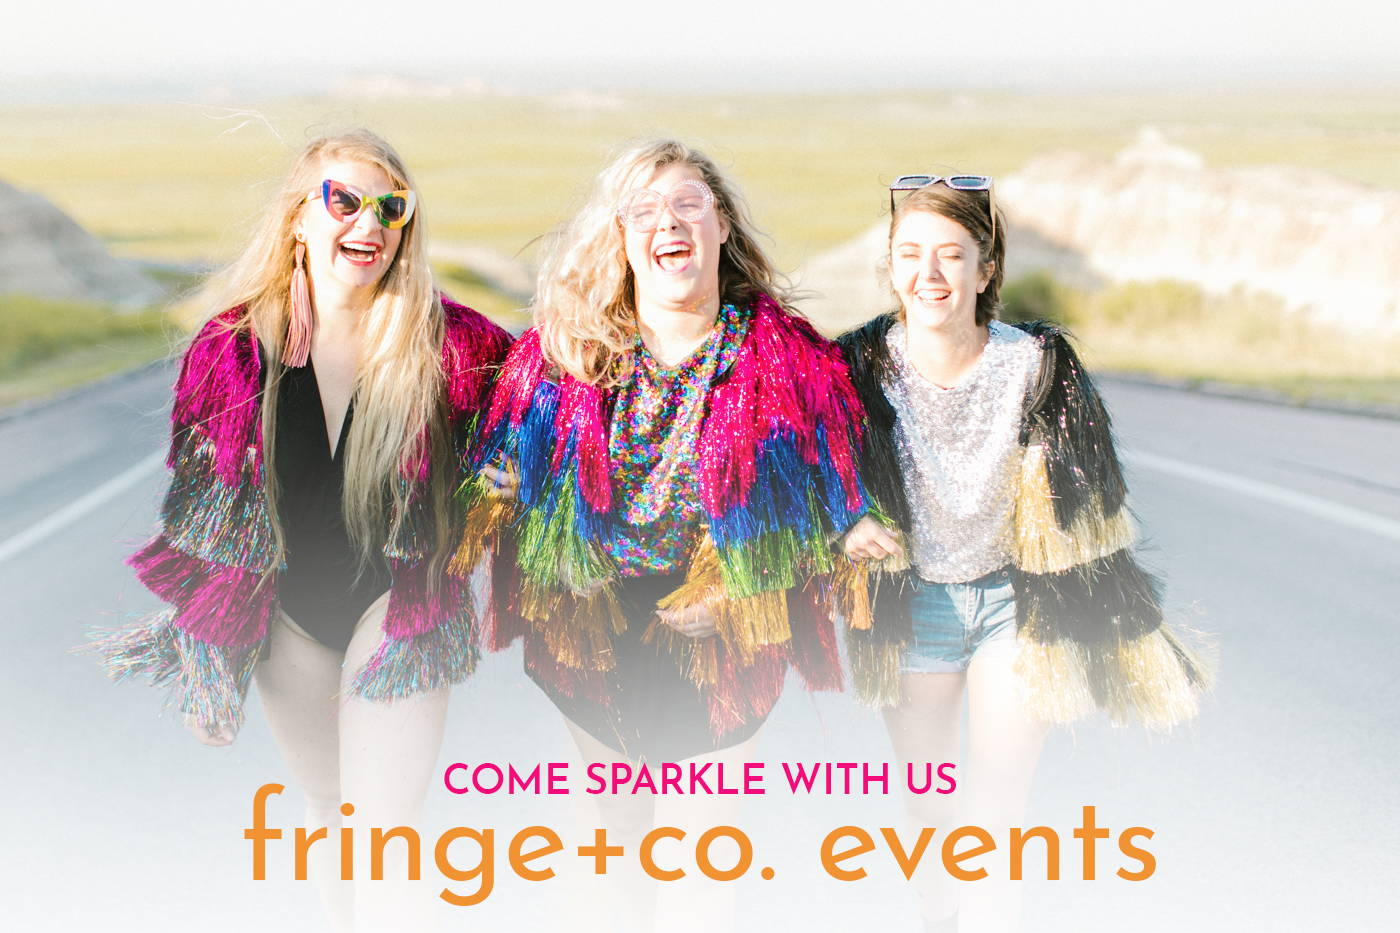 Fringe + co. event page girls in tinsel jackets laughing and walking